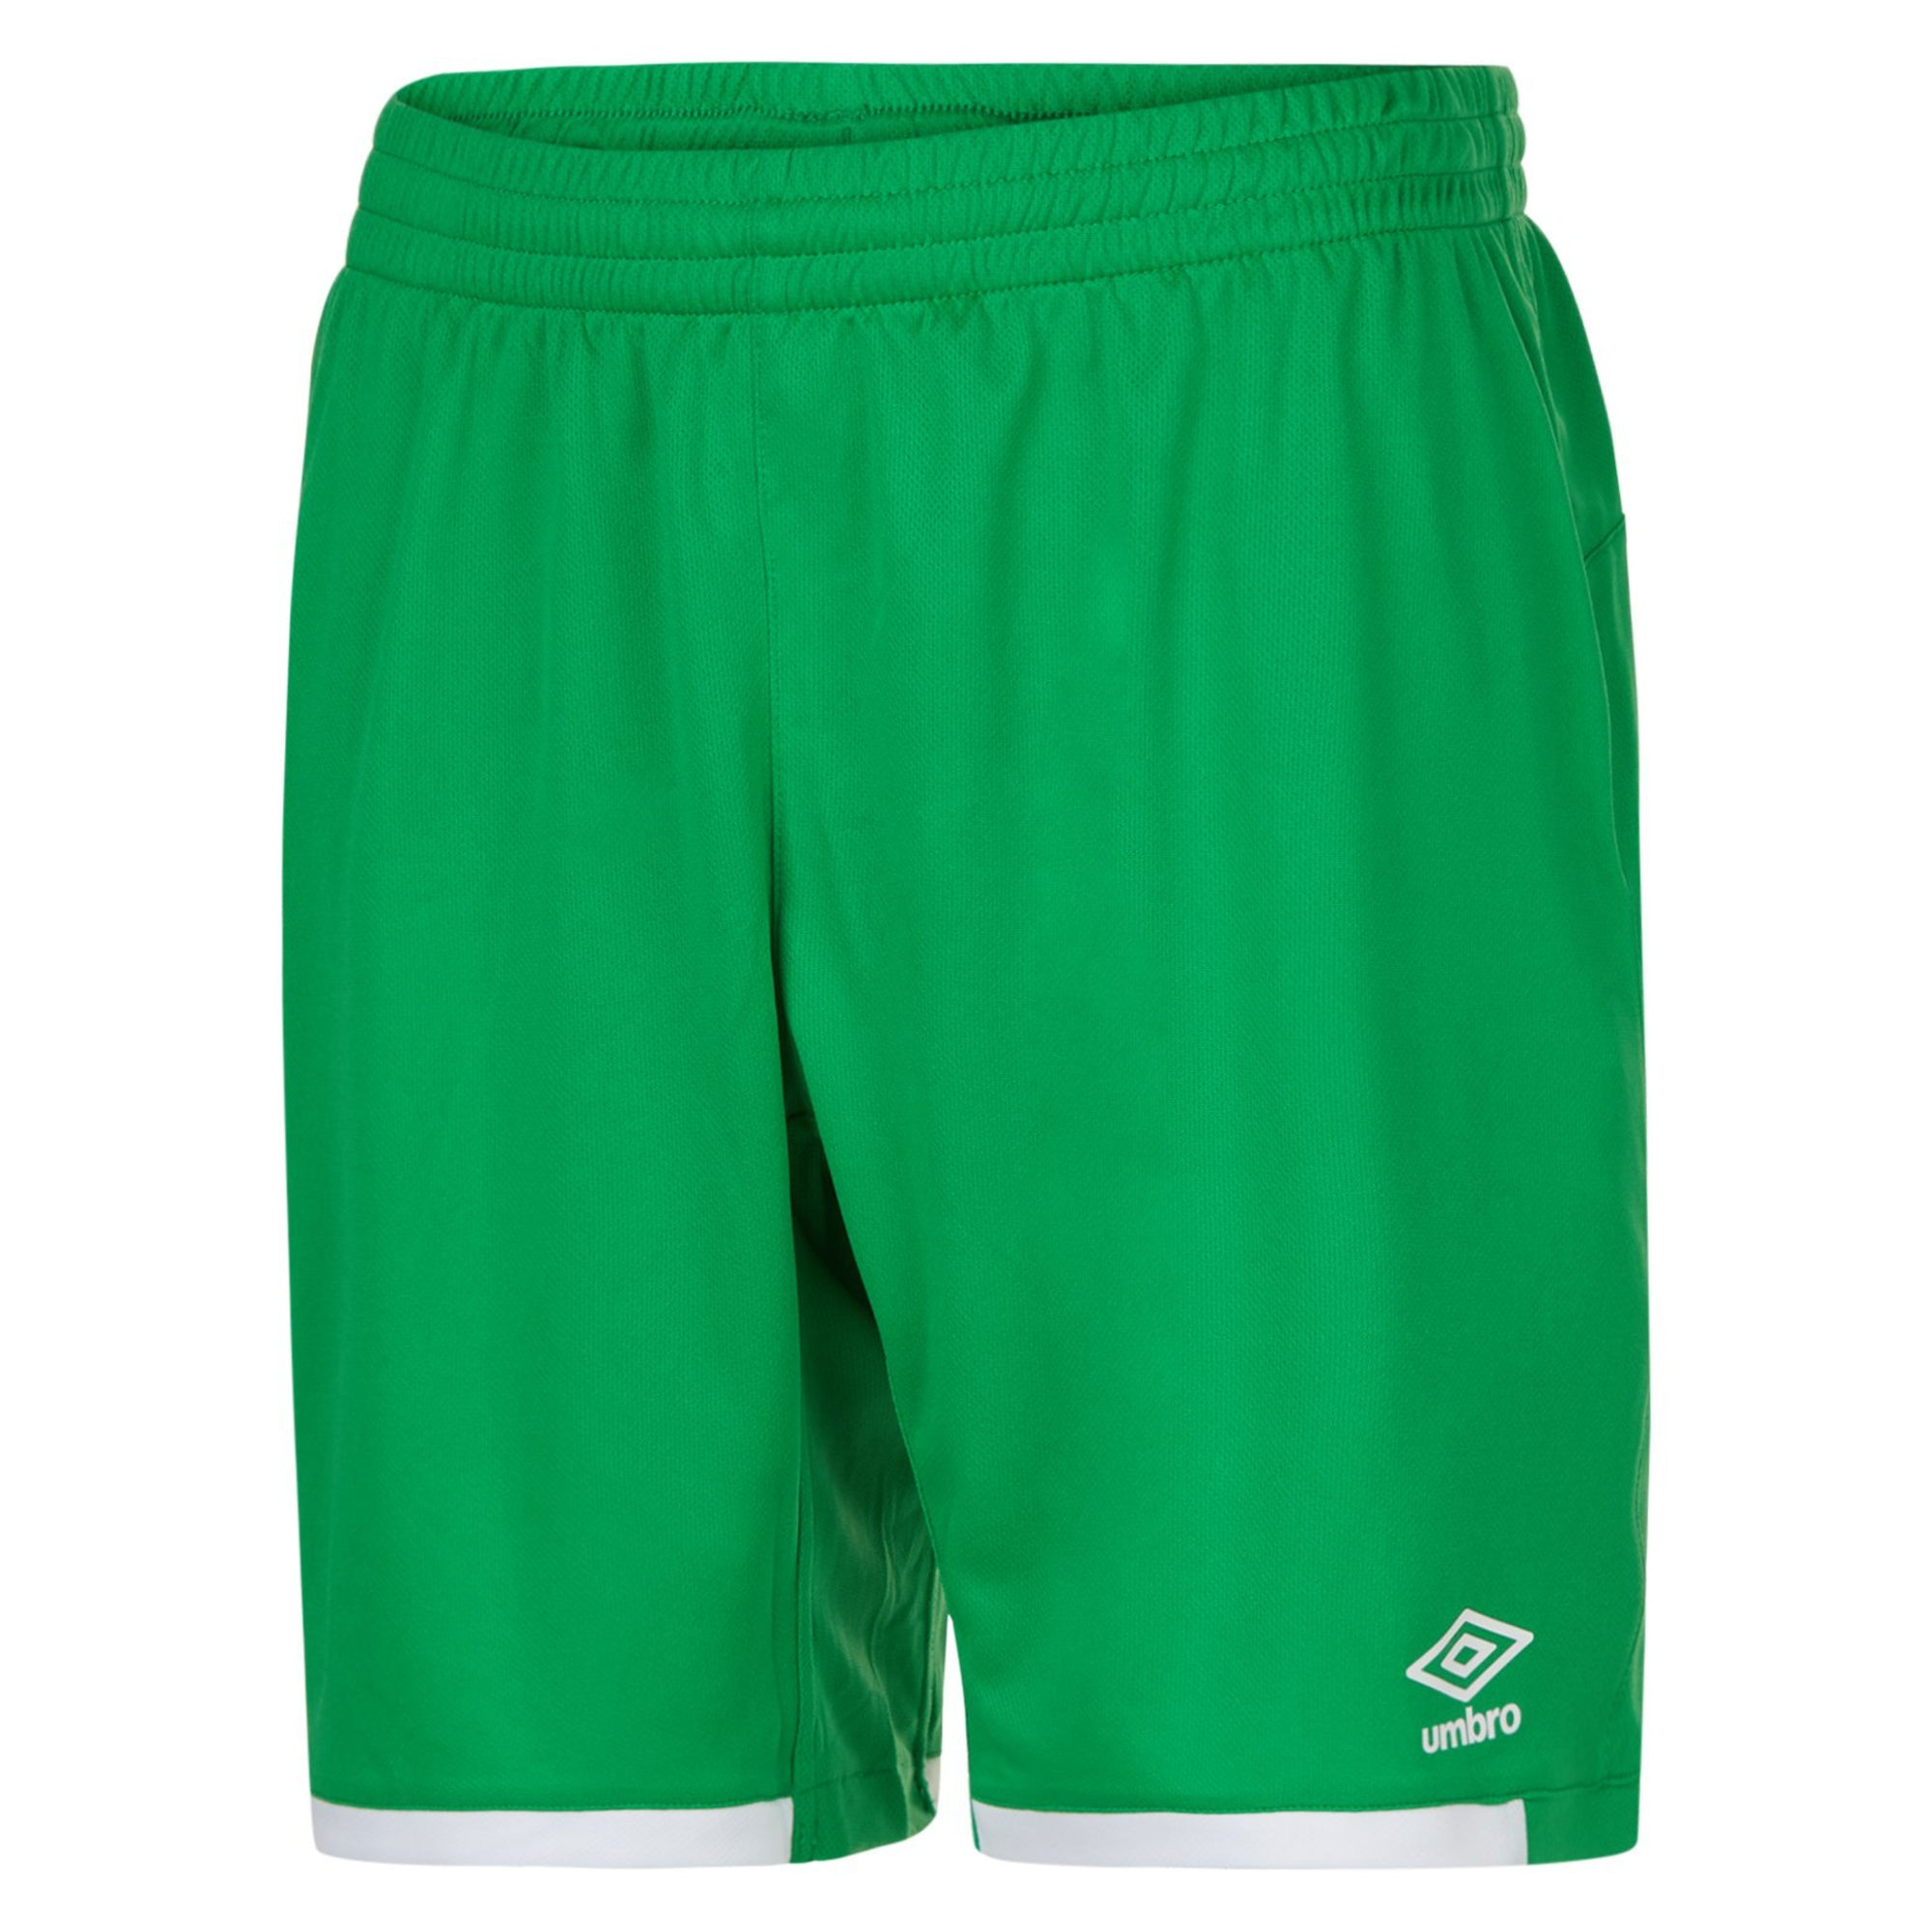 emerald umbro premier shorts with contrast white hems